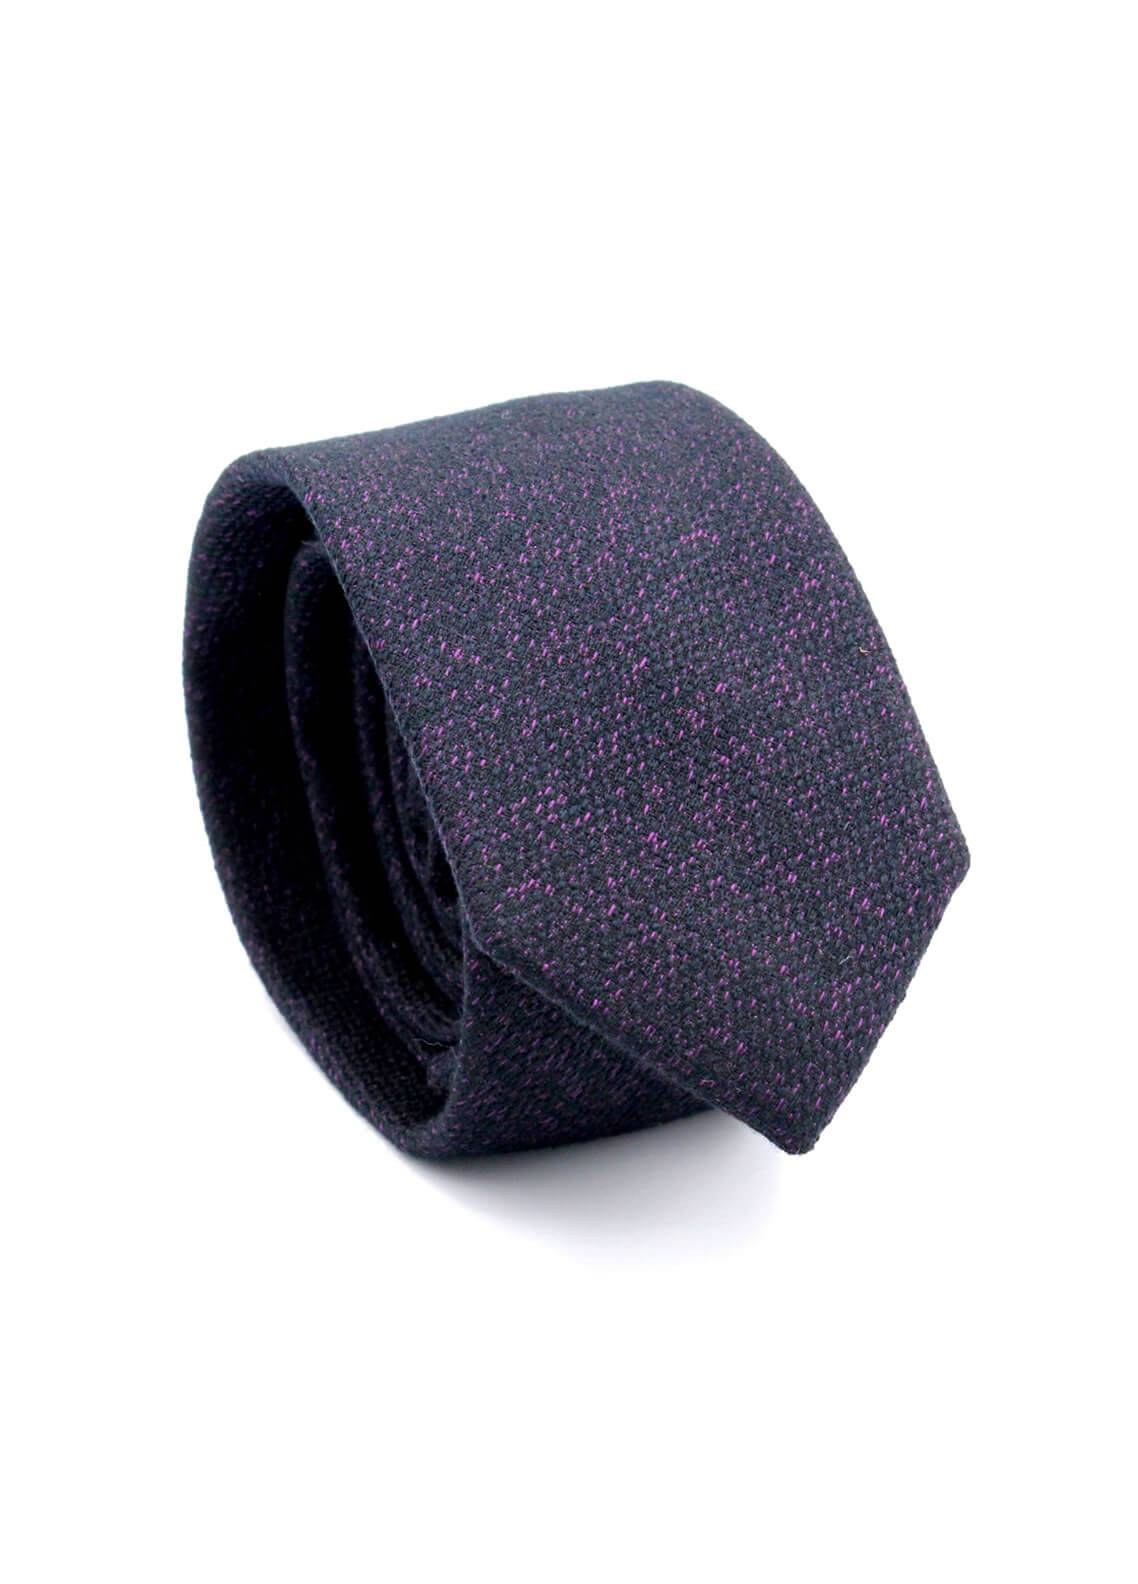 Skangen Narrow Wool Neck Tie Neck Tie SKTI-W-007 -